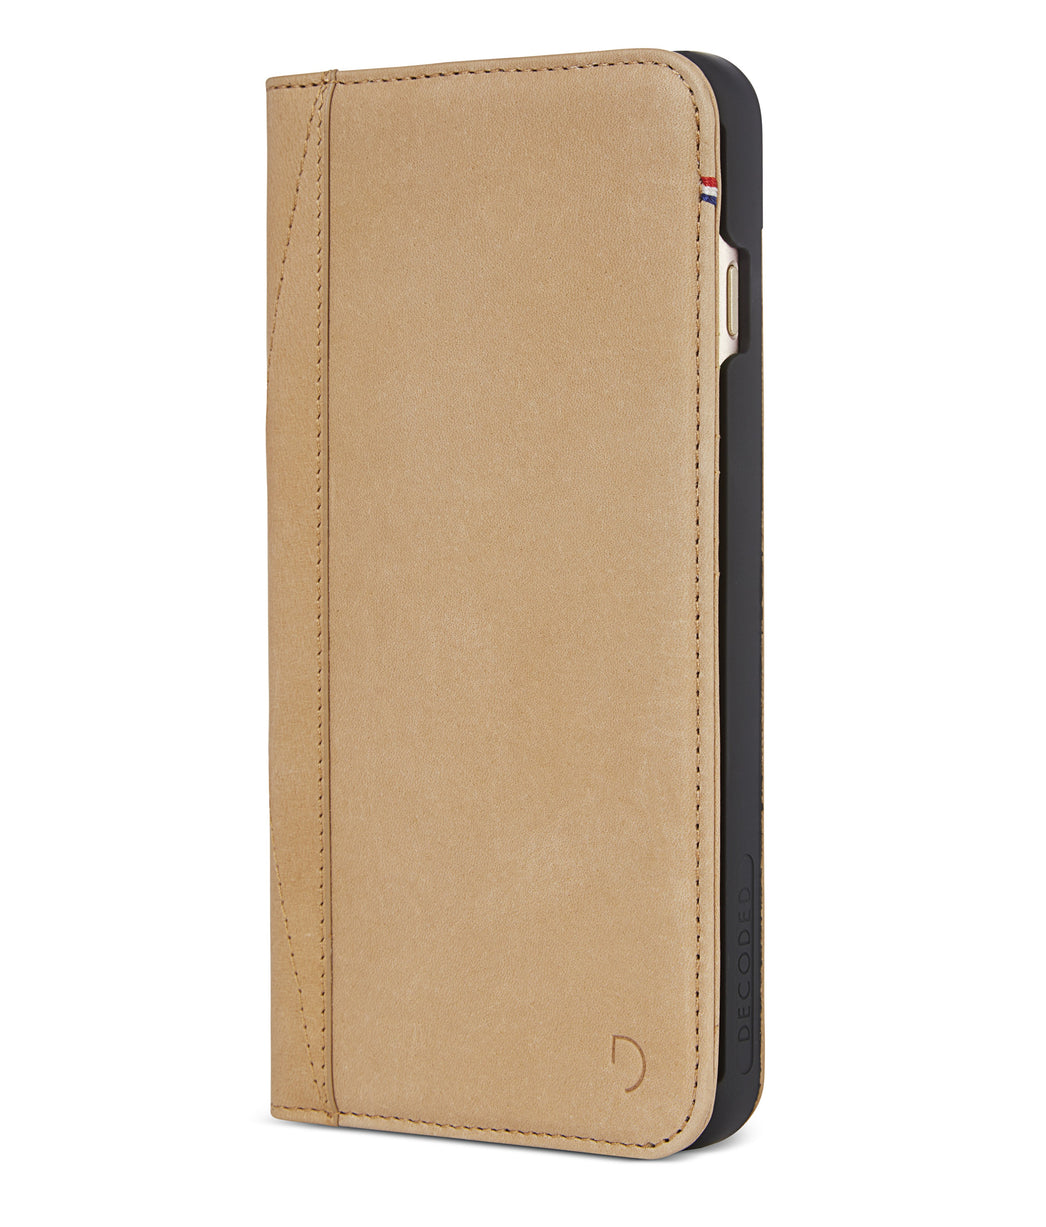 Wallet Case Sahara - iPhone 7 Plus